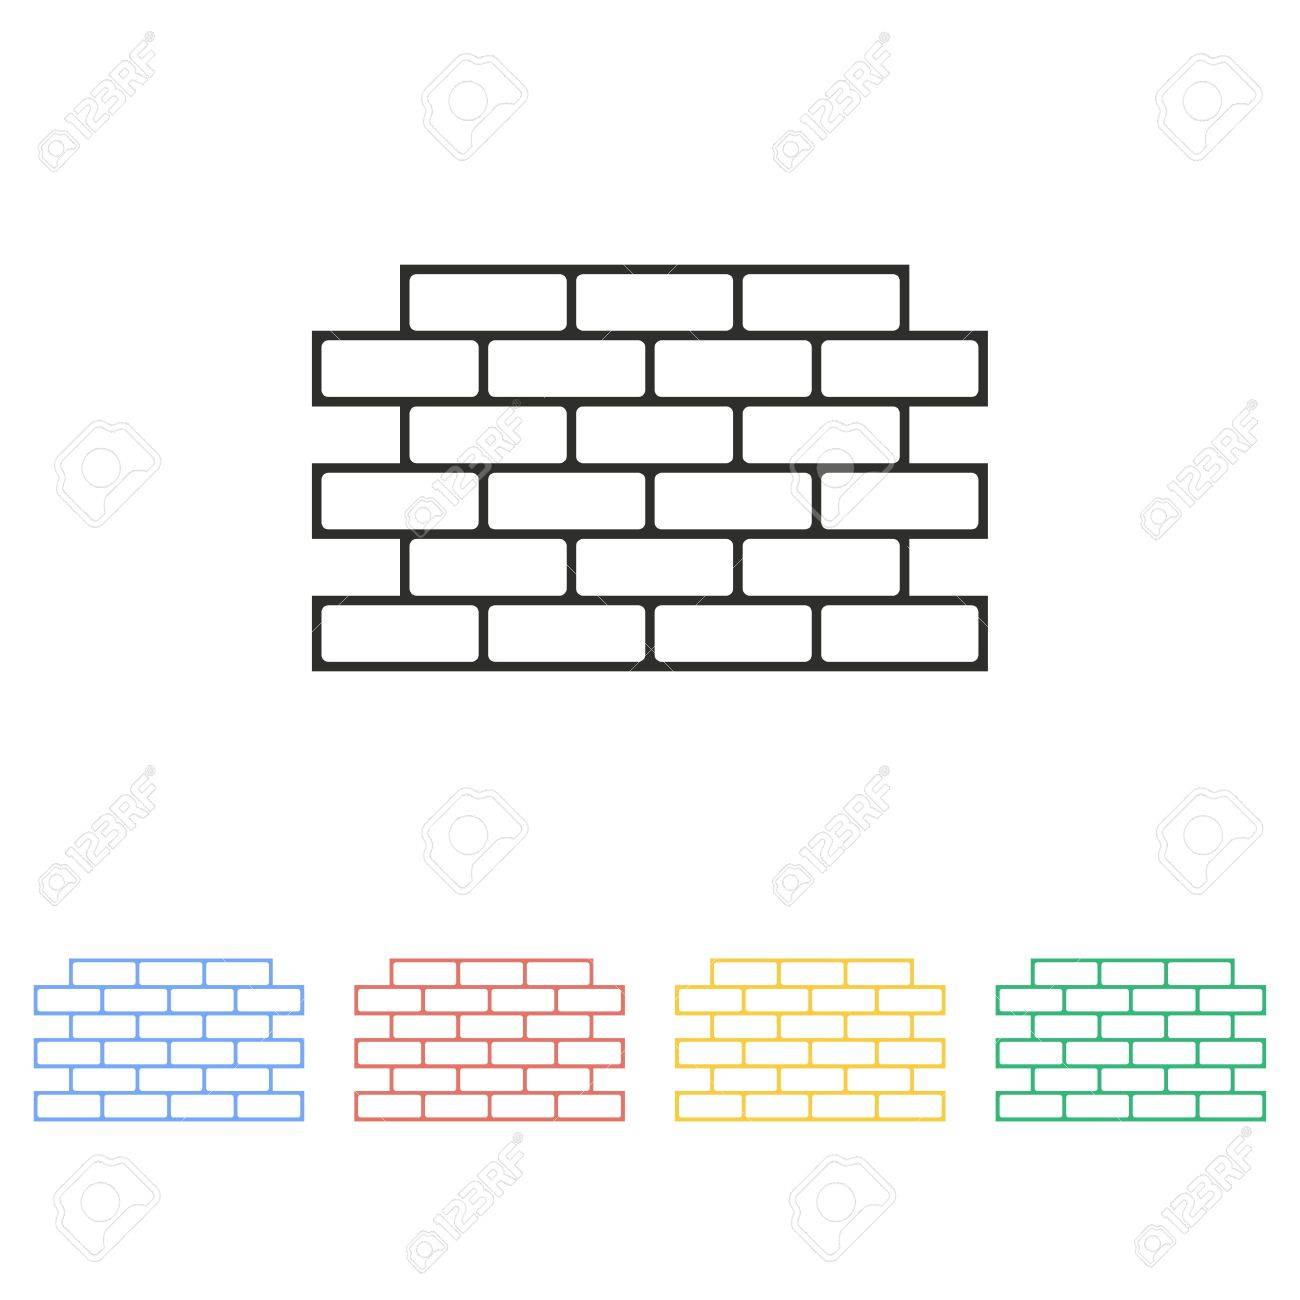 Brick wall vector icon  Illustration isolated on white background